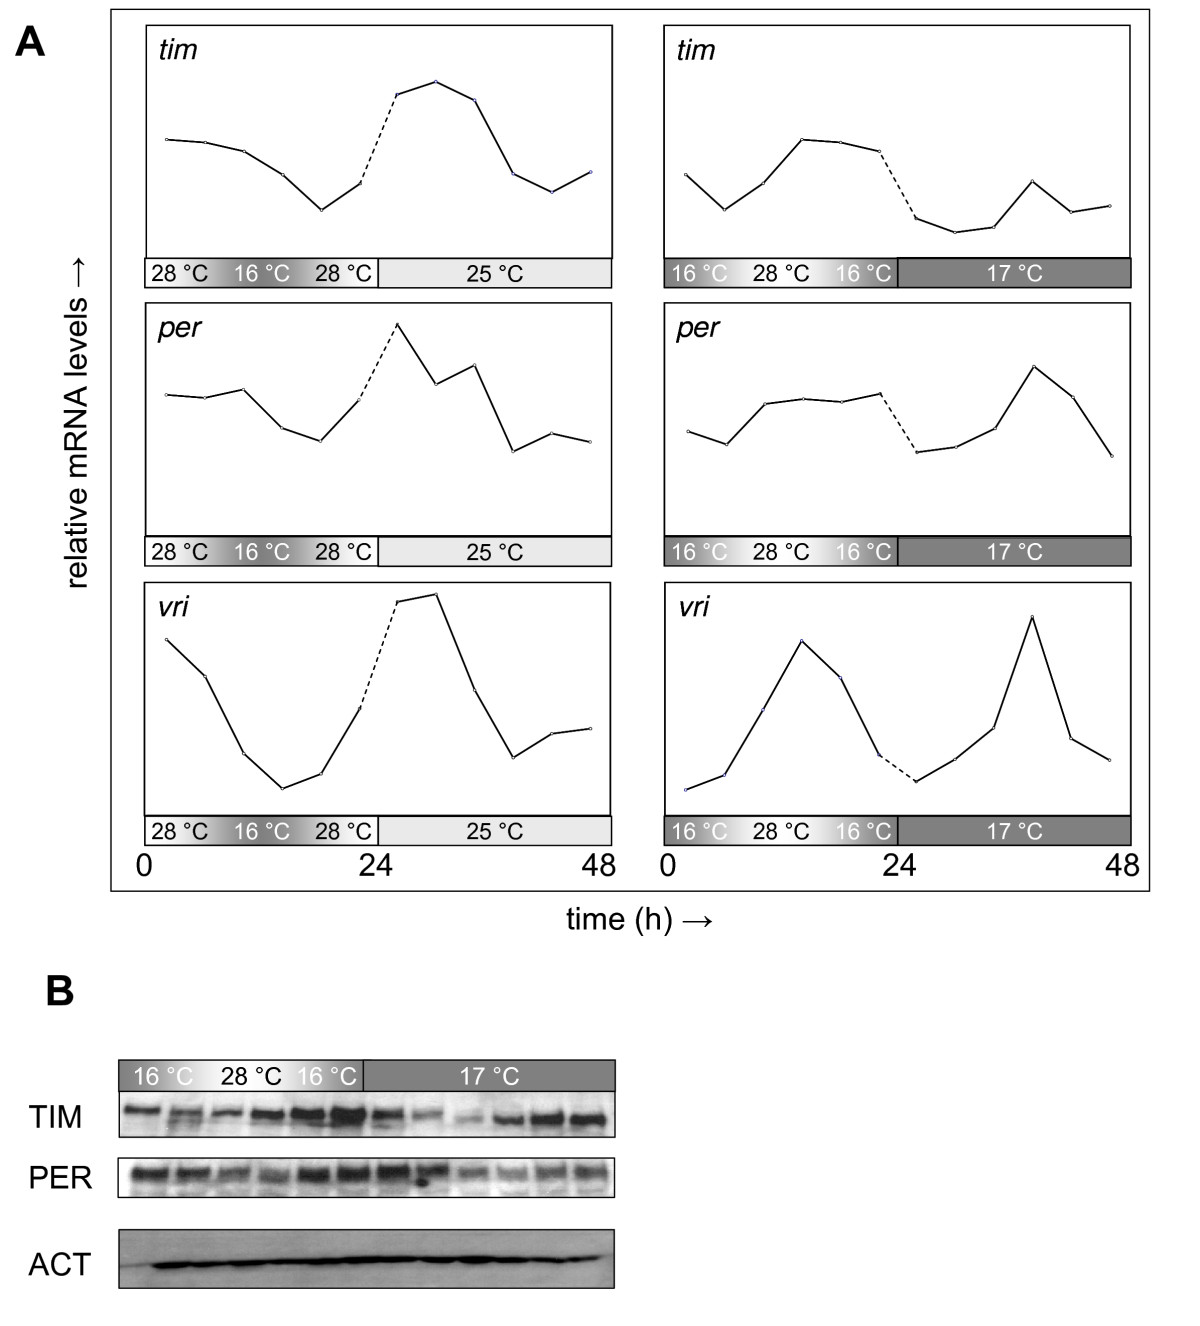 http://static-content.springer.com/image/art%3A10.1186%2F1741-7007-7-49/MediaObjects/12915_2009_Article_257_Fig9_HTML.jpg